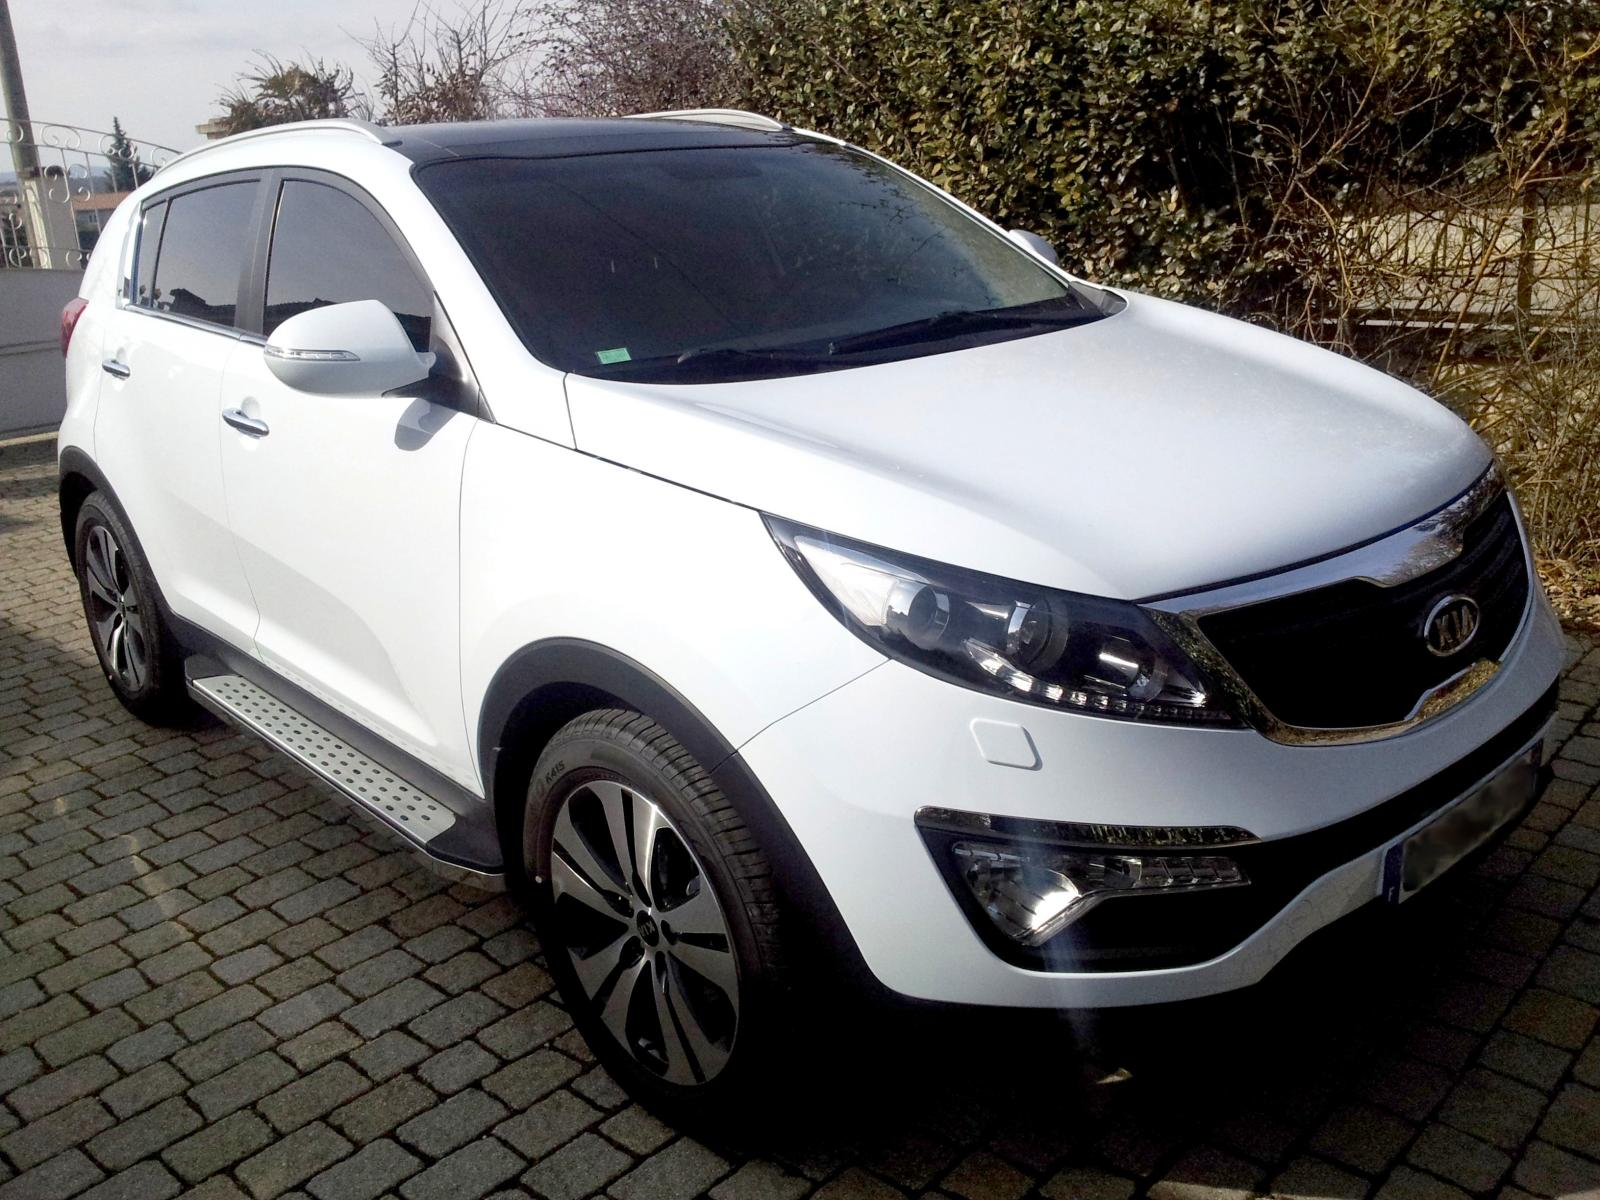 forum du kia sportage iii et iv bonne f te ma belle elle a 1000 kms. Black Bedroom Furniture Sets. Home Design Ideas